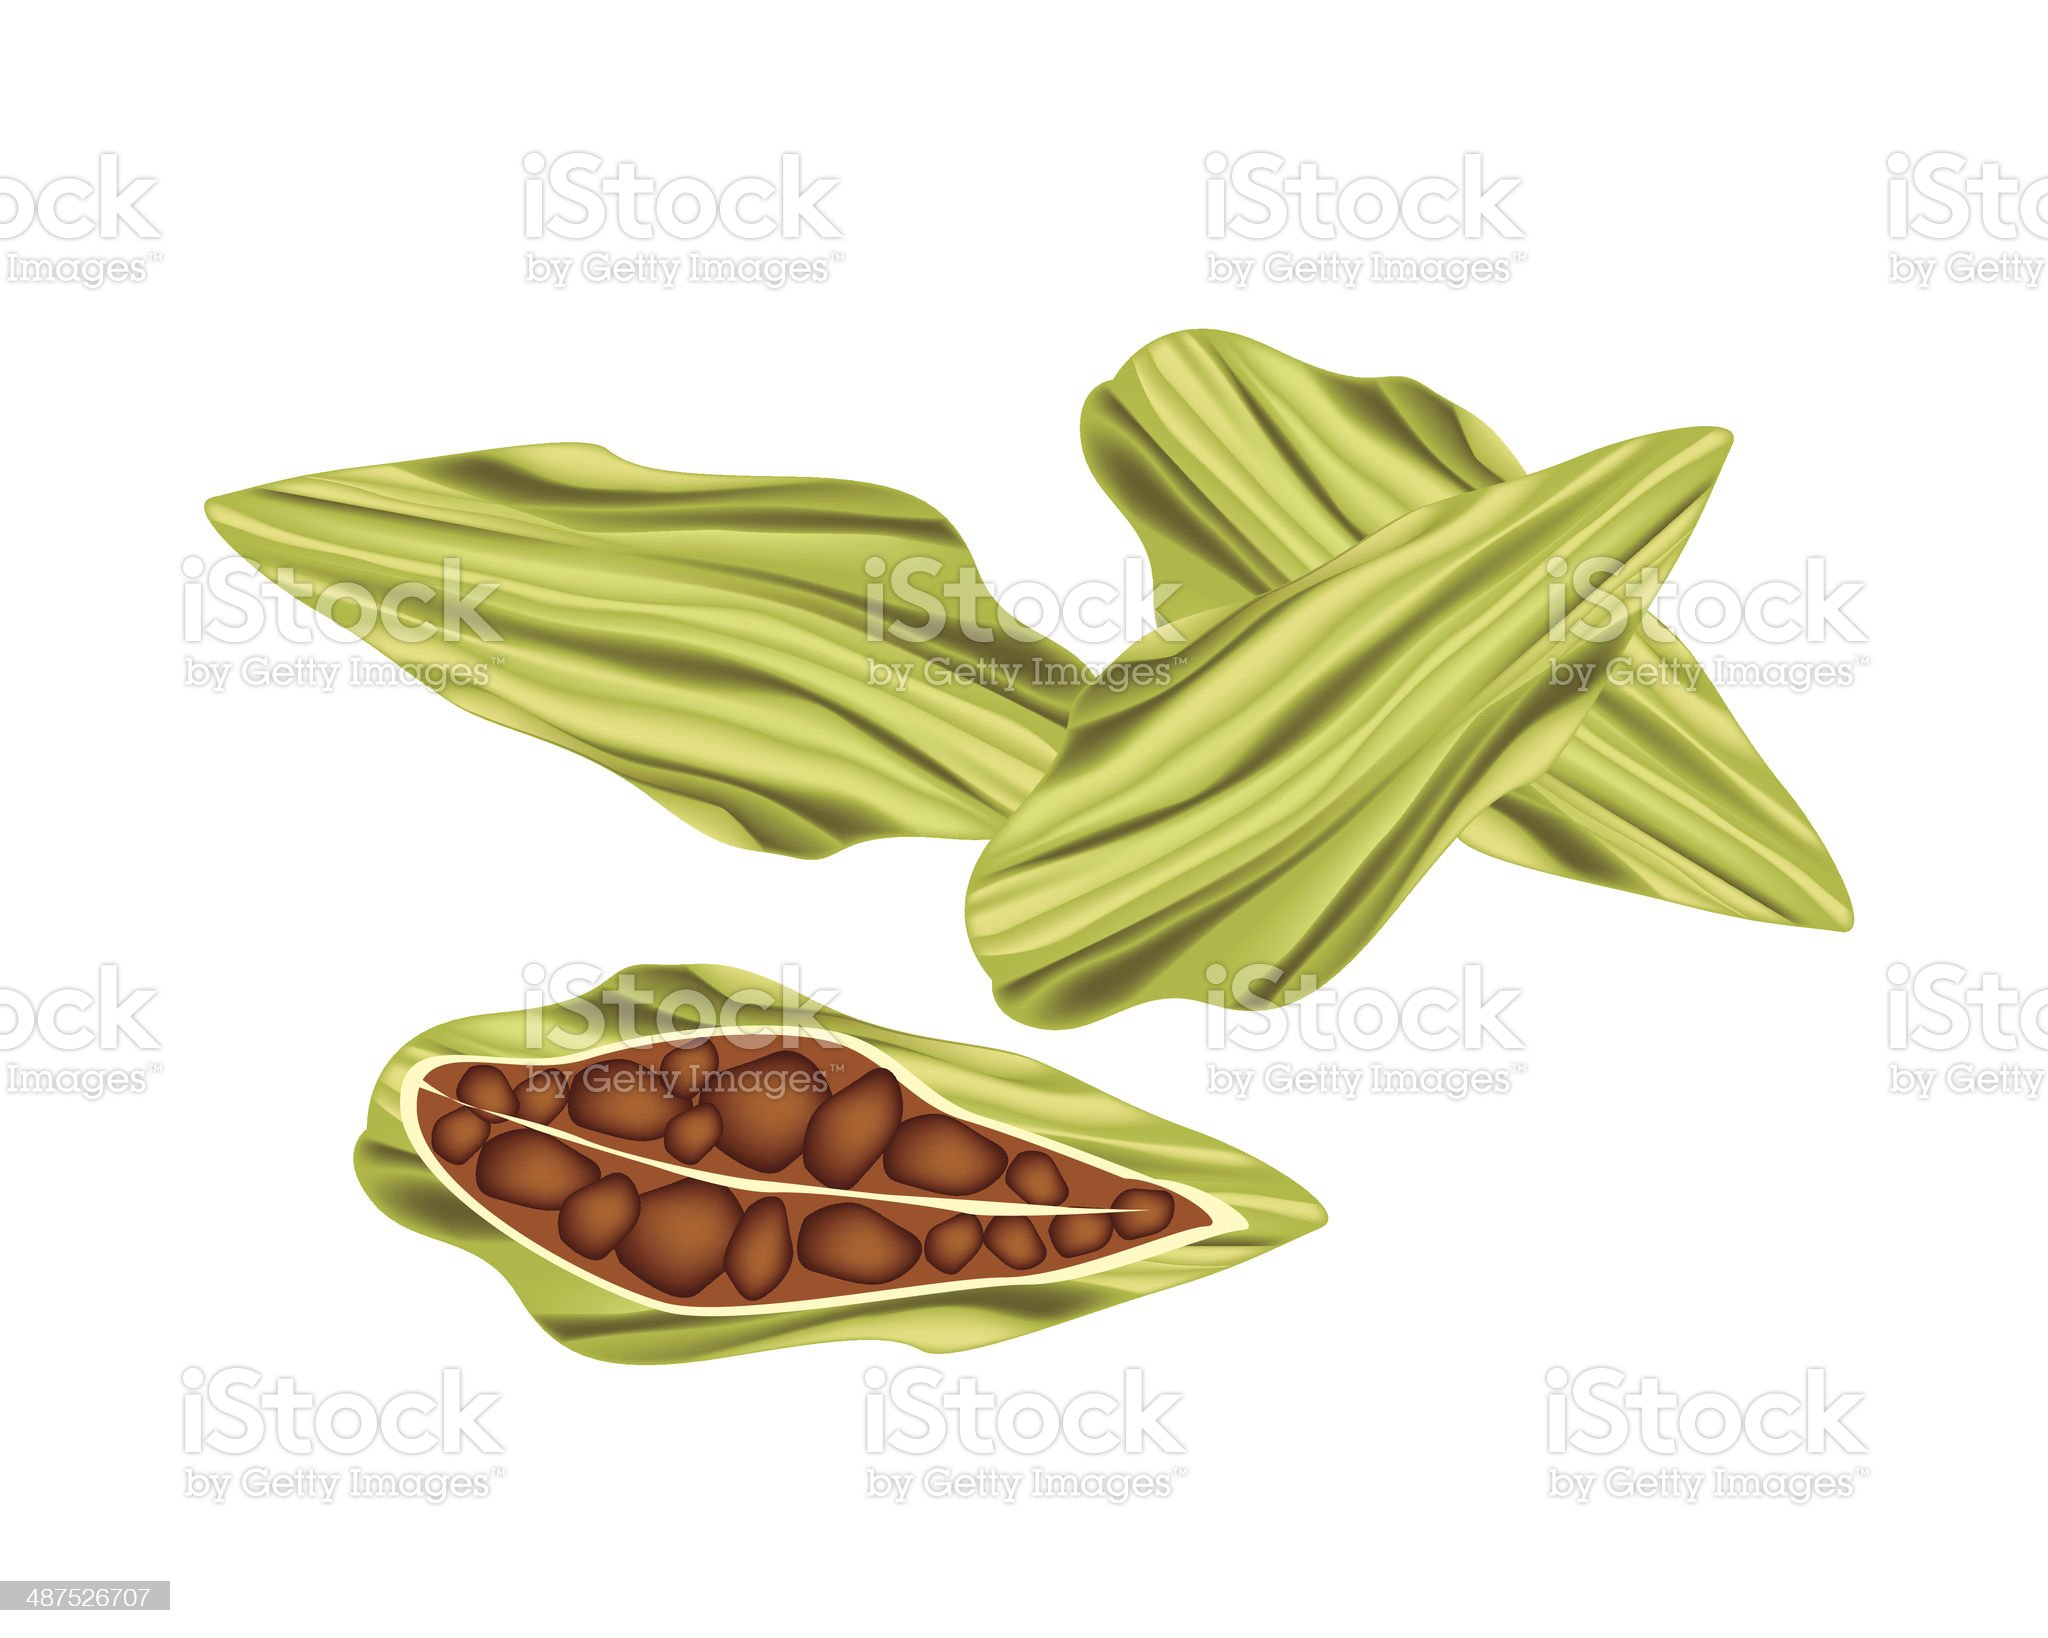 Whole and Half of Fresh Cardamom Pods royalty-free stock vector art